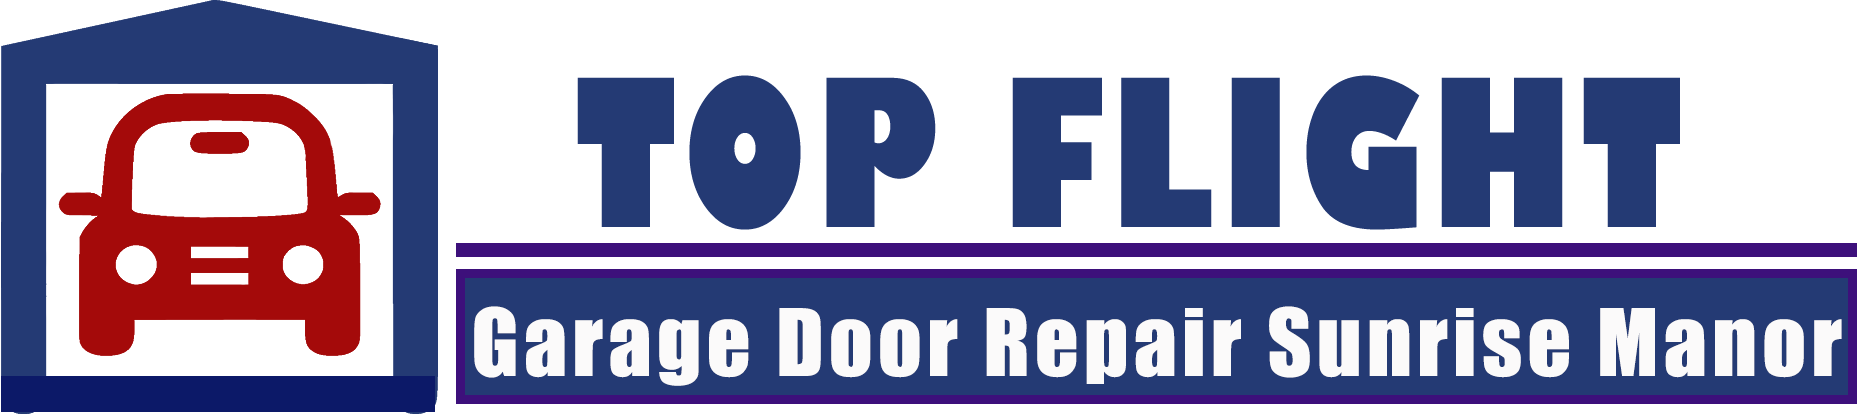 GARAGE DOOR REPAIR & SERVICE